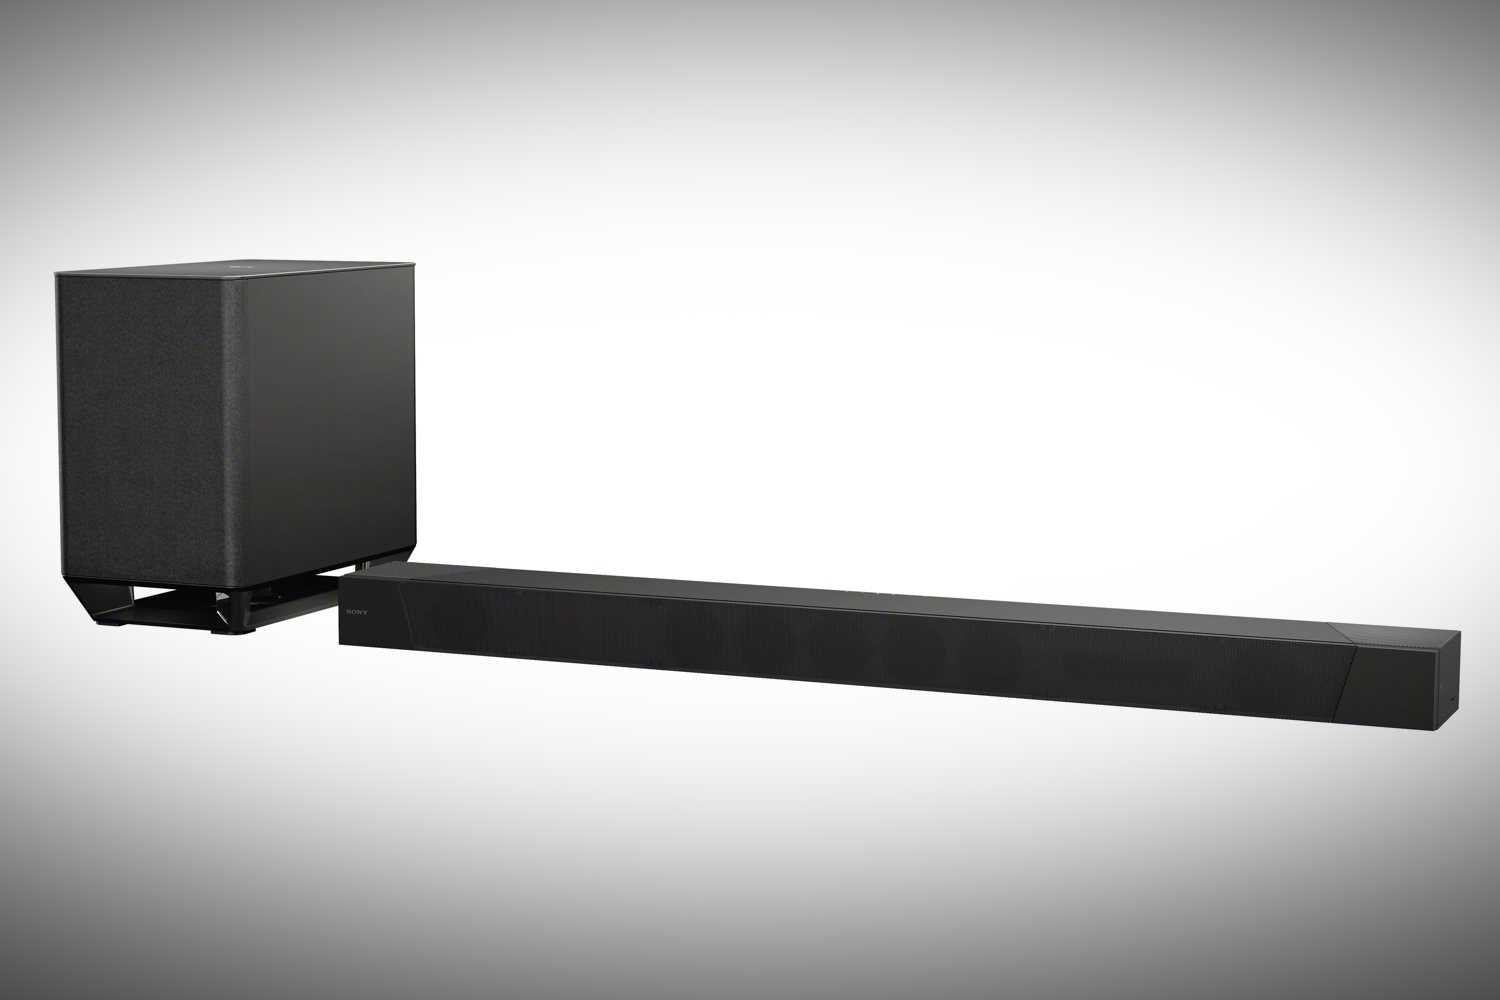 sony brings dolby atmos surround sound to its new soundbar wiring diagram  for satellite tv wiring diagram for tv & sky